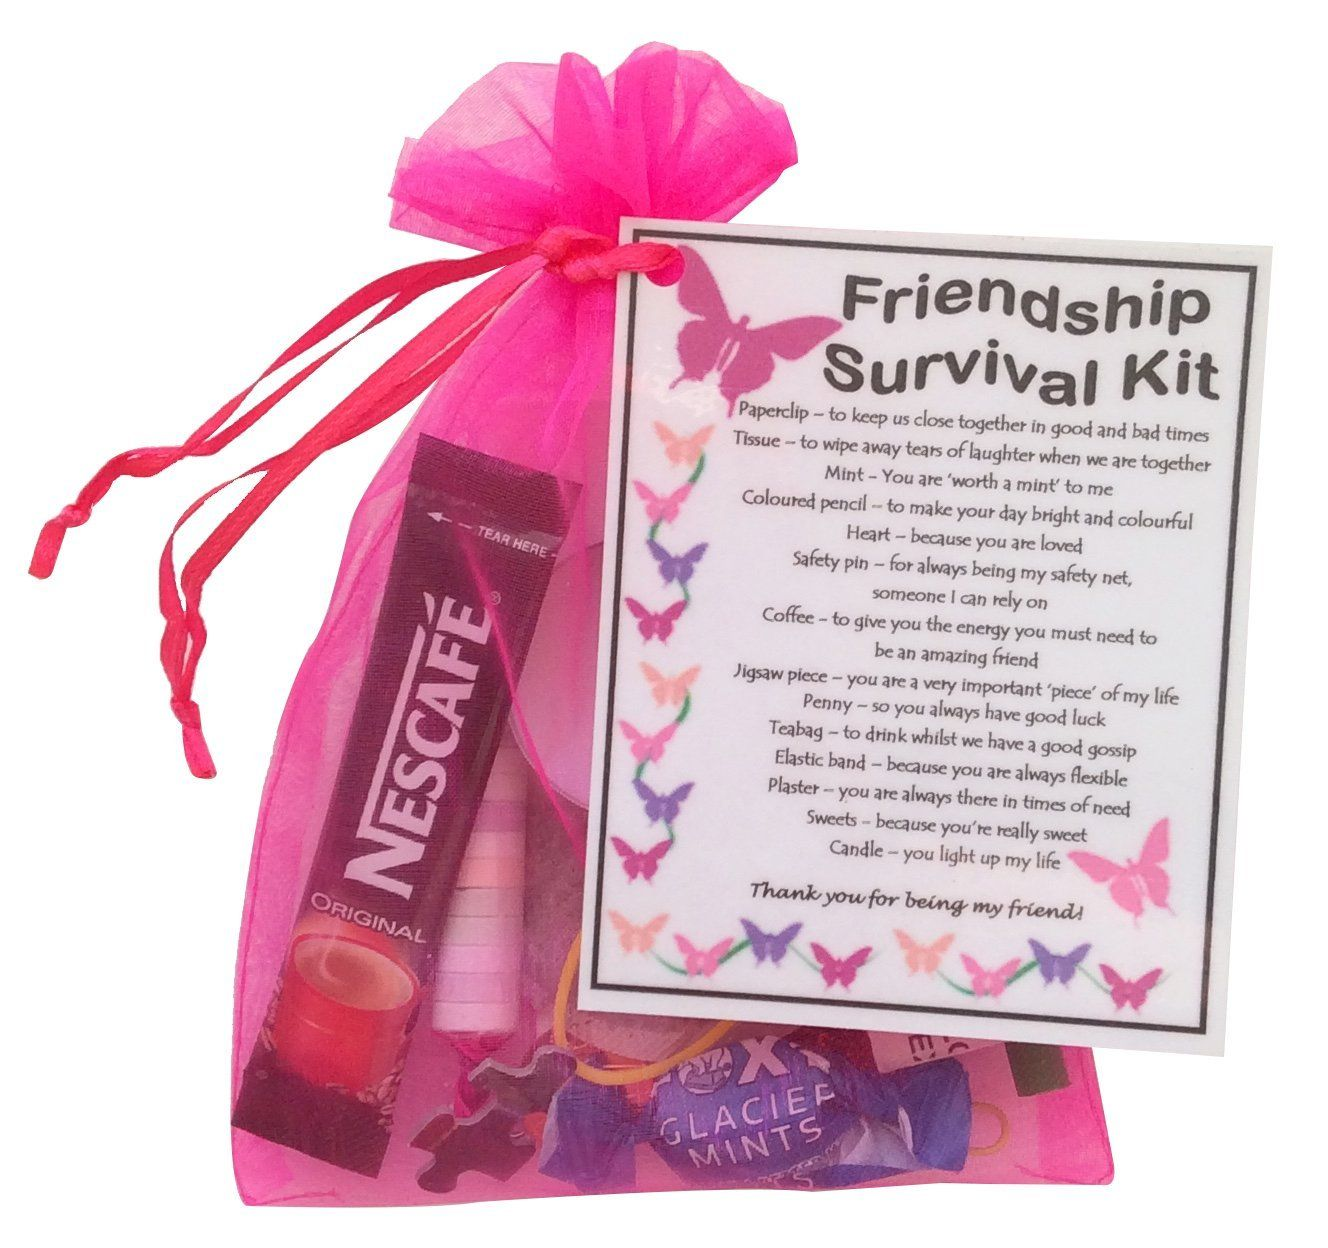 Friendship Survival Kit Gift Great Present For Birthday Or Christmas